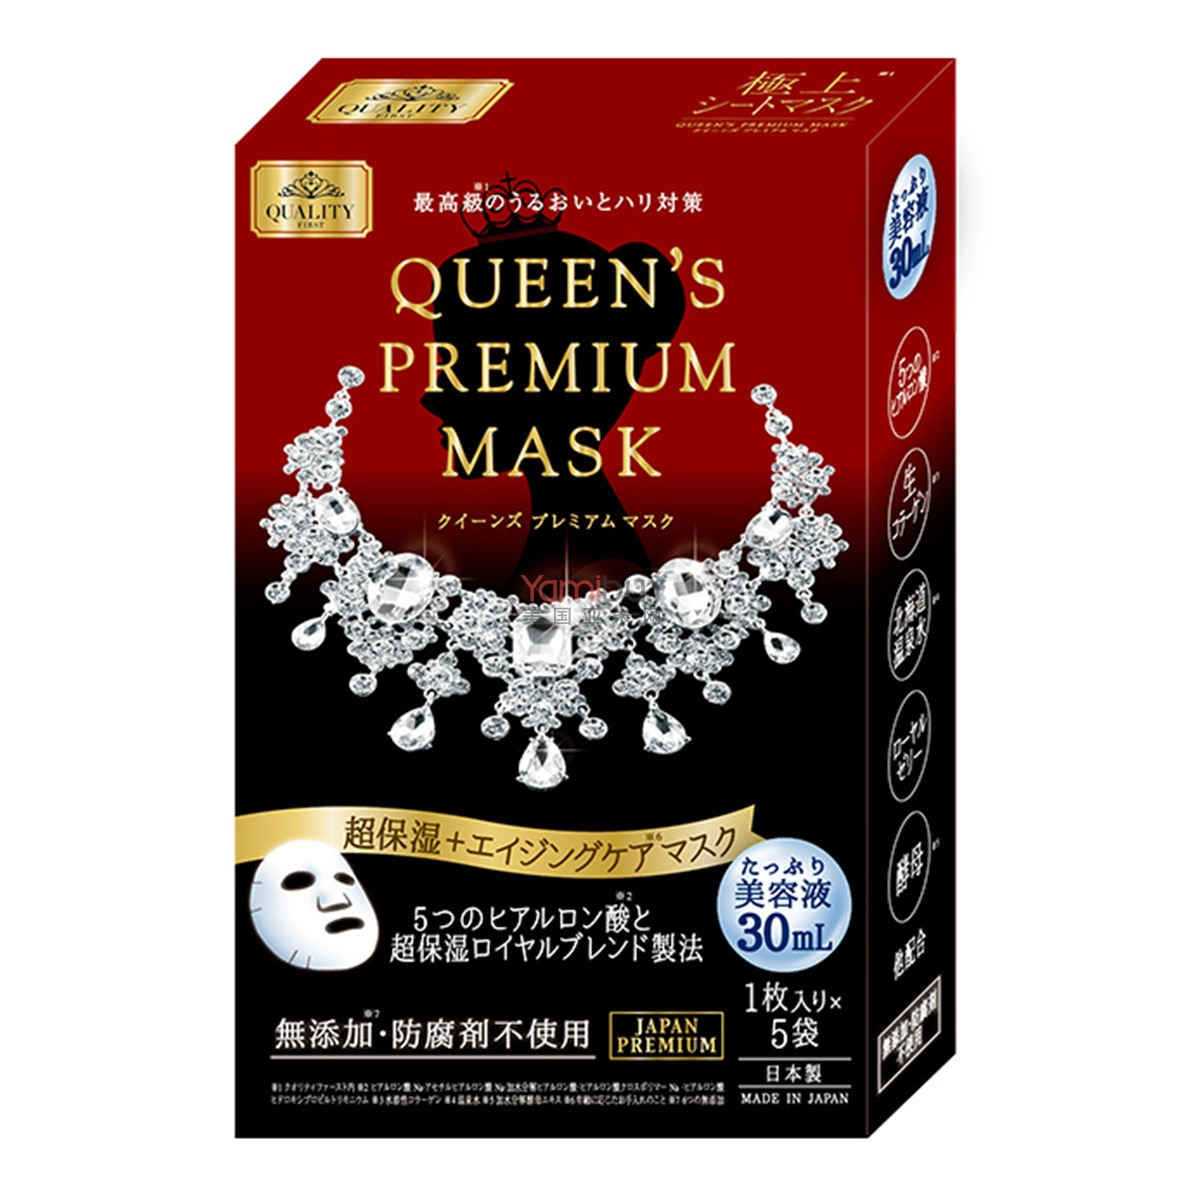 QUALITY FIRST Queen's Premium Hydrating Mask 5sheets